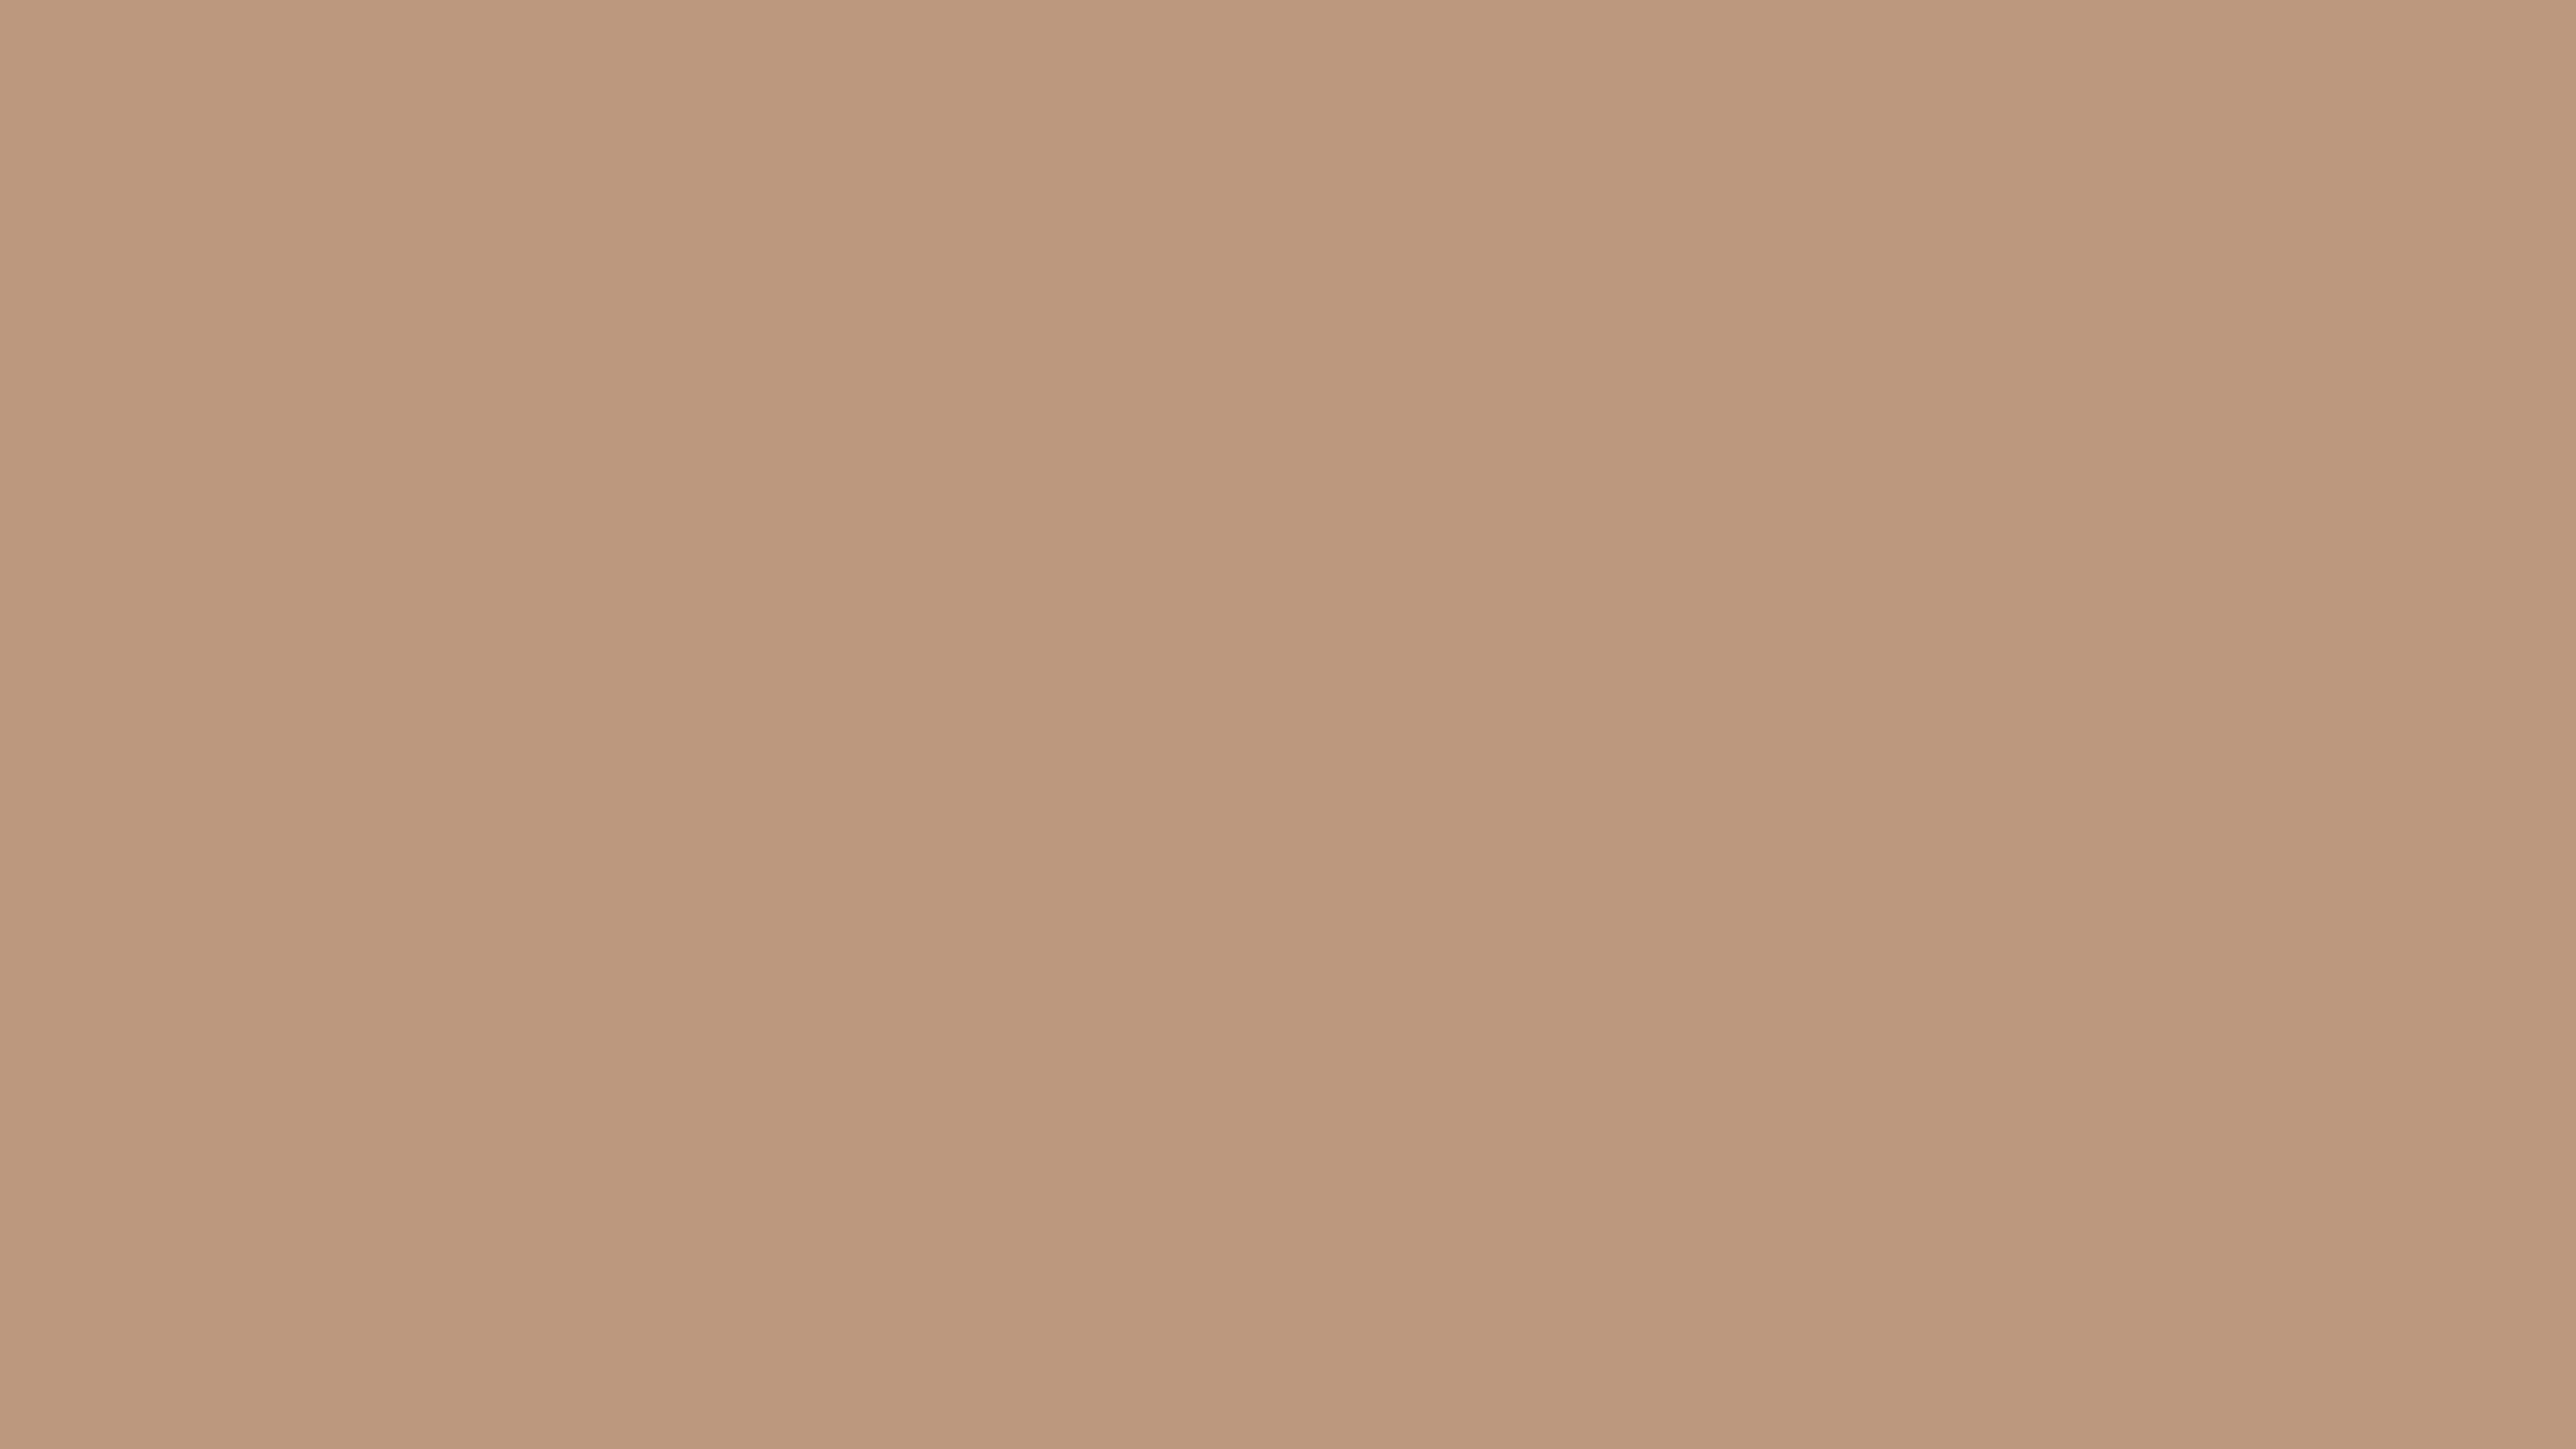 Pale taupe solid color background wallpaper 5120x2880 - Color taup ...